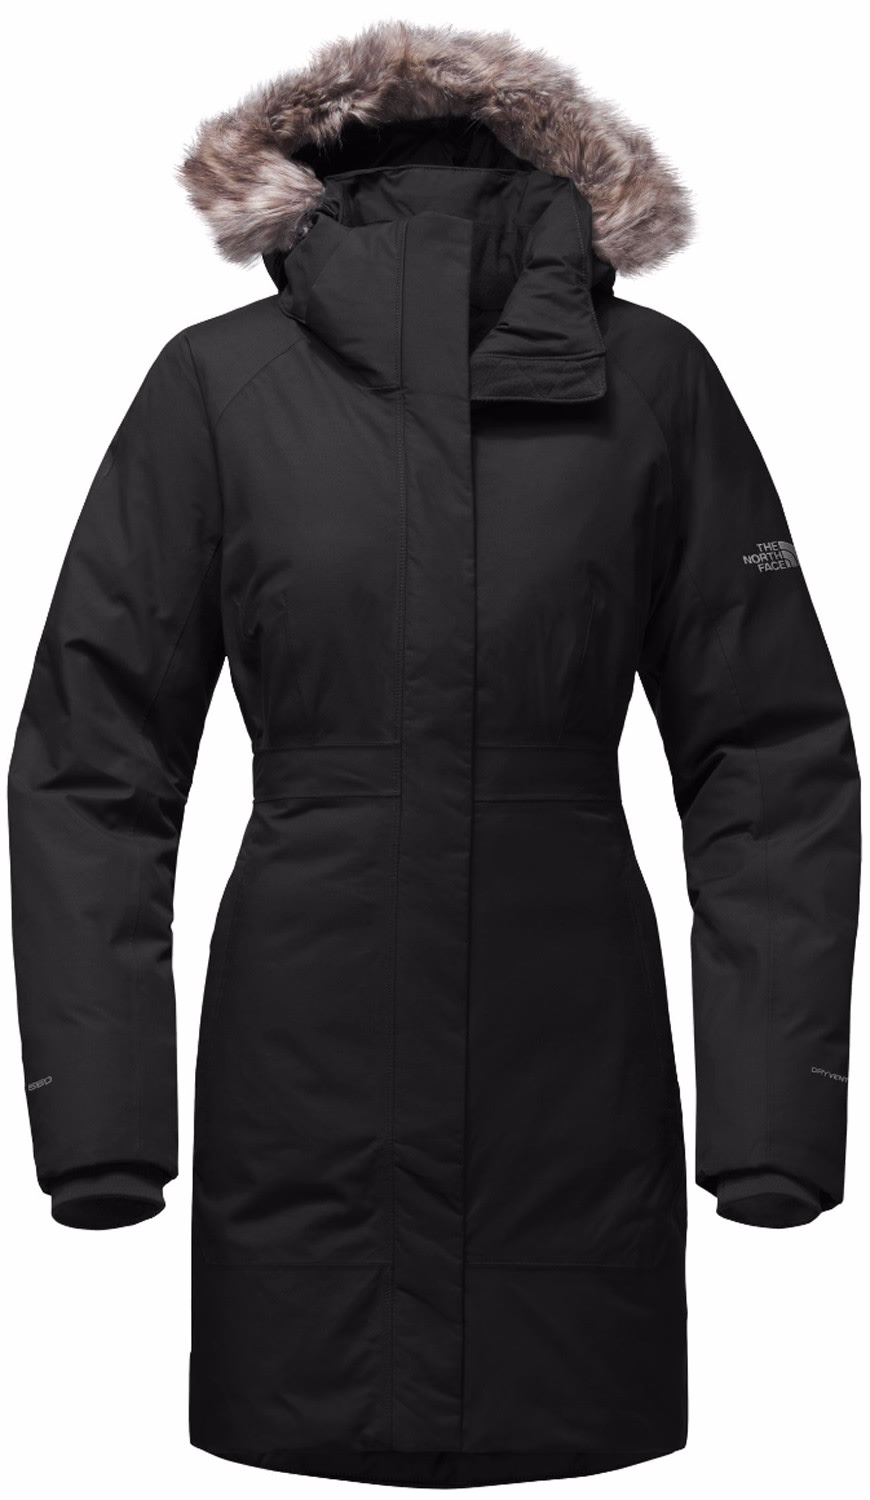 North face womens parka jackets